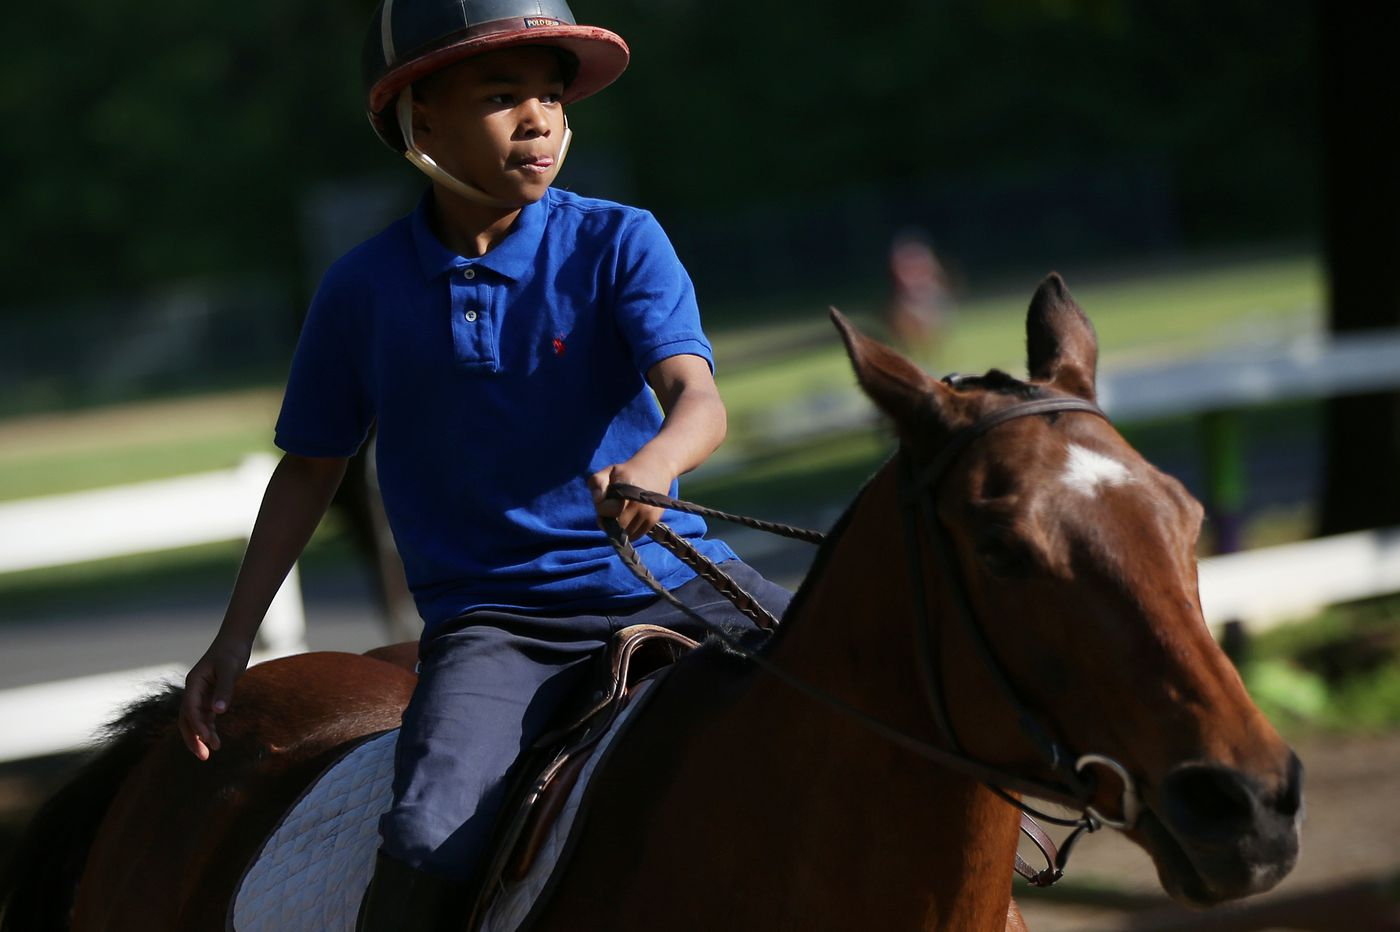 Inside Work to Ride, the Philly nonprofit producing polo stars